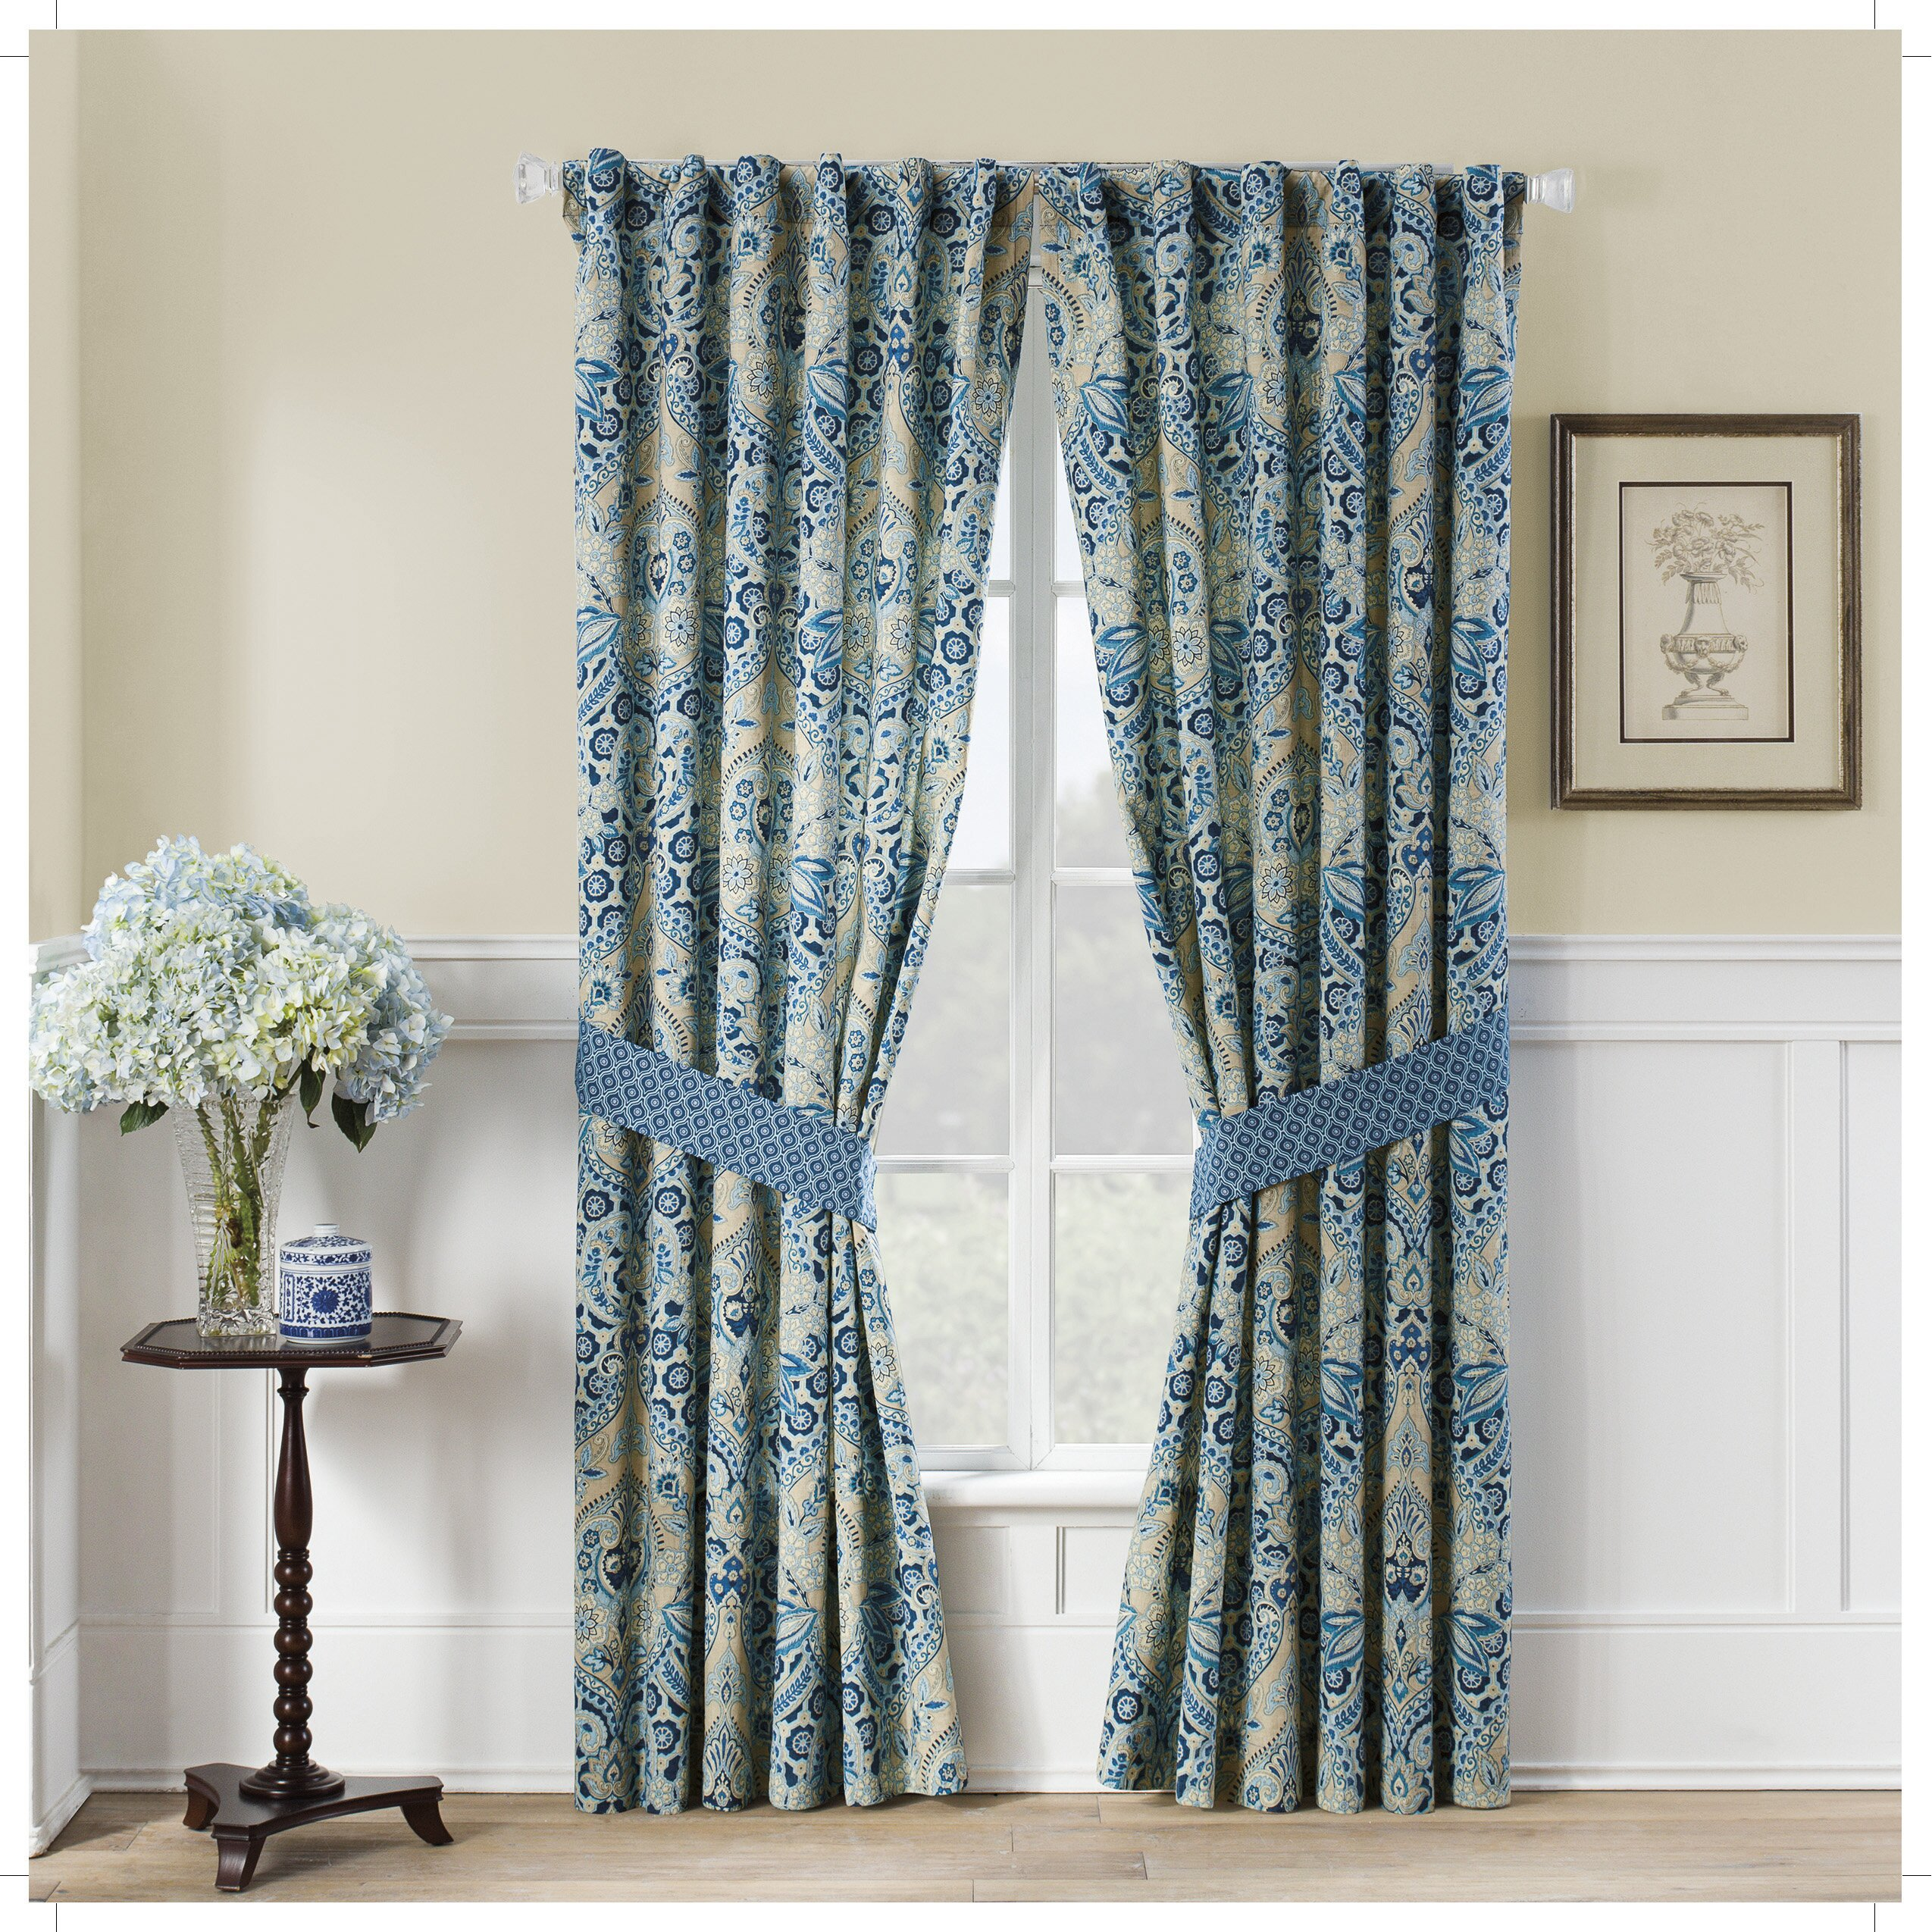 Waverly Moonlit Shadows Curtain Panels Wayfair